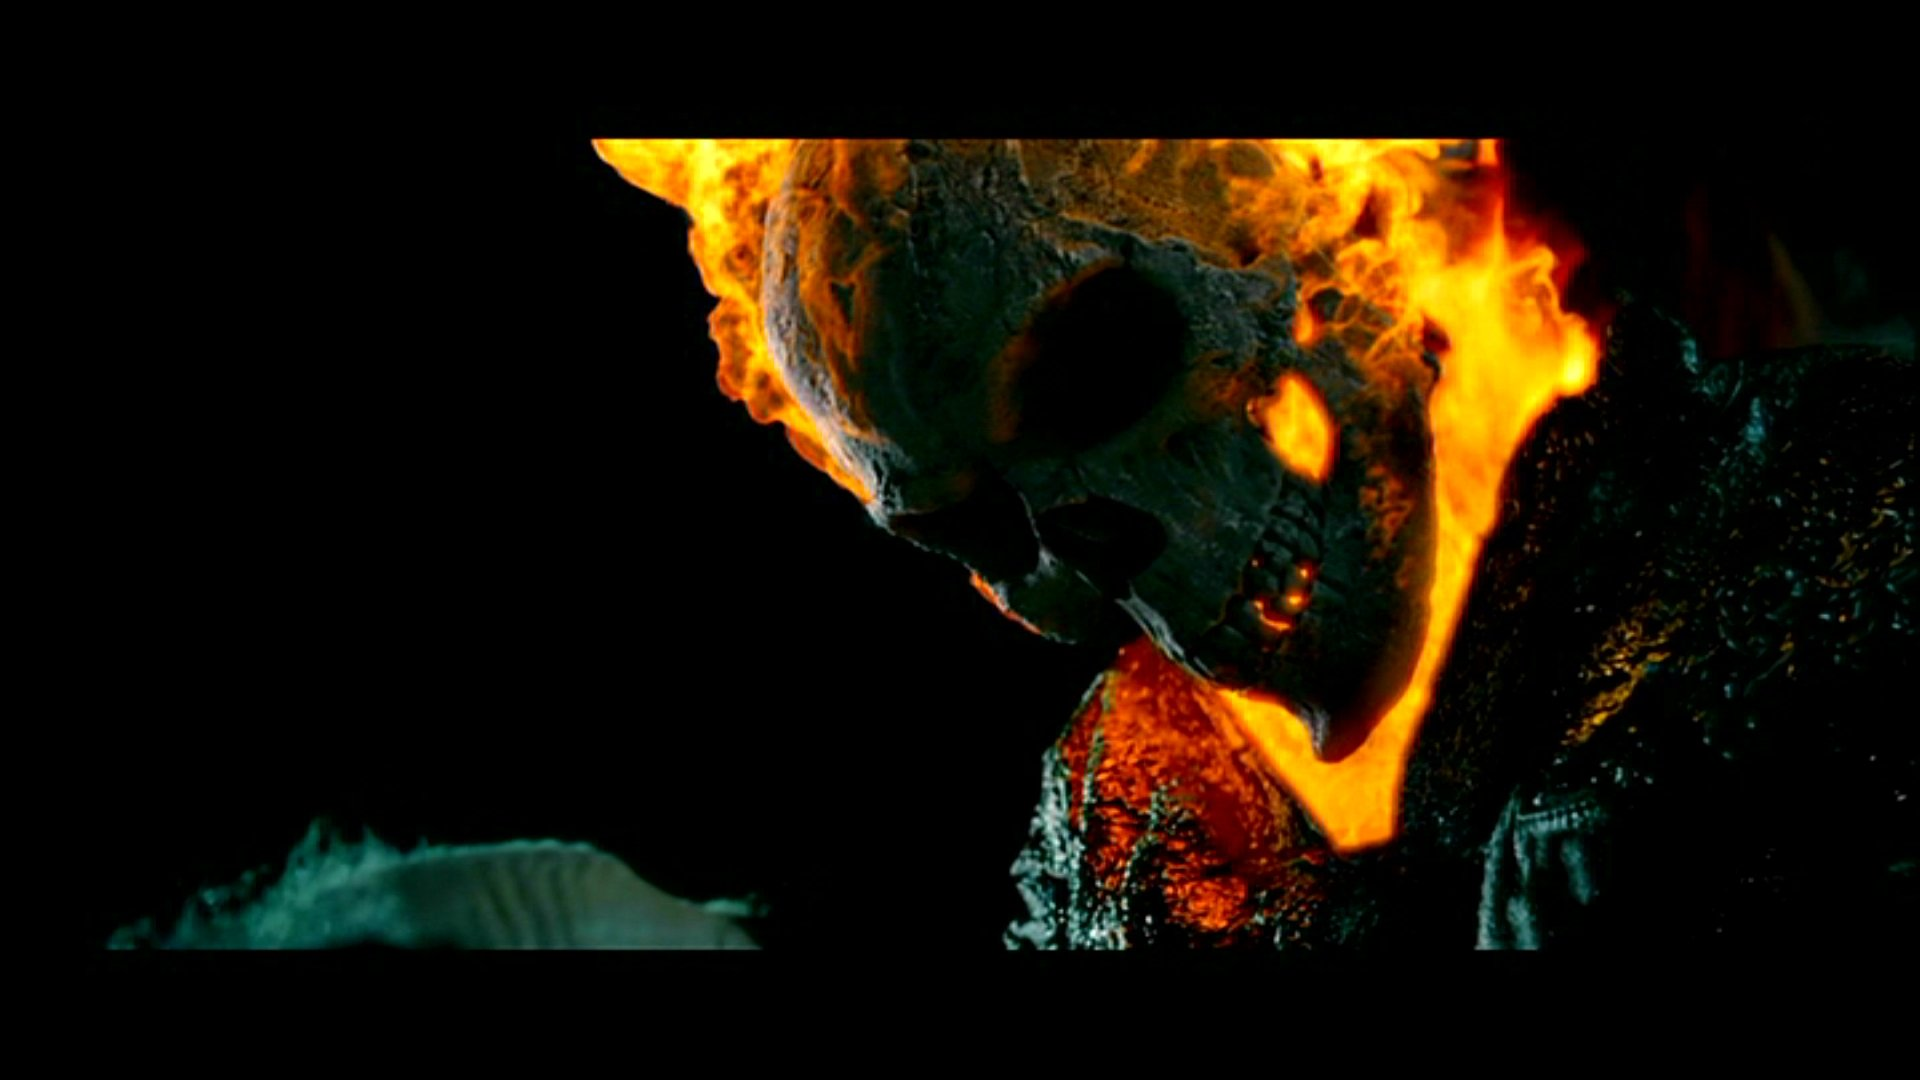 download full hd 1920x1080 ghost rider movie computer wallpaper id